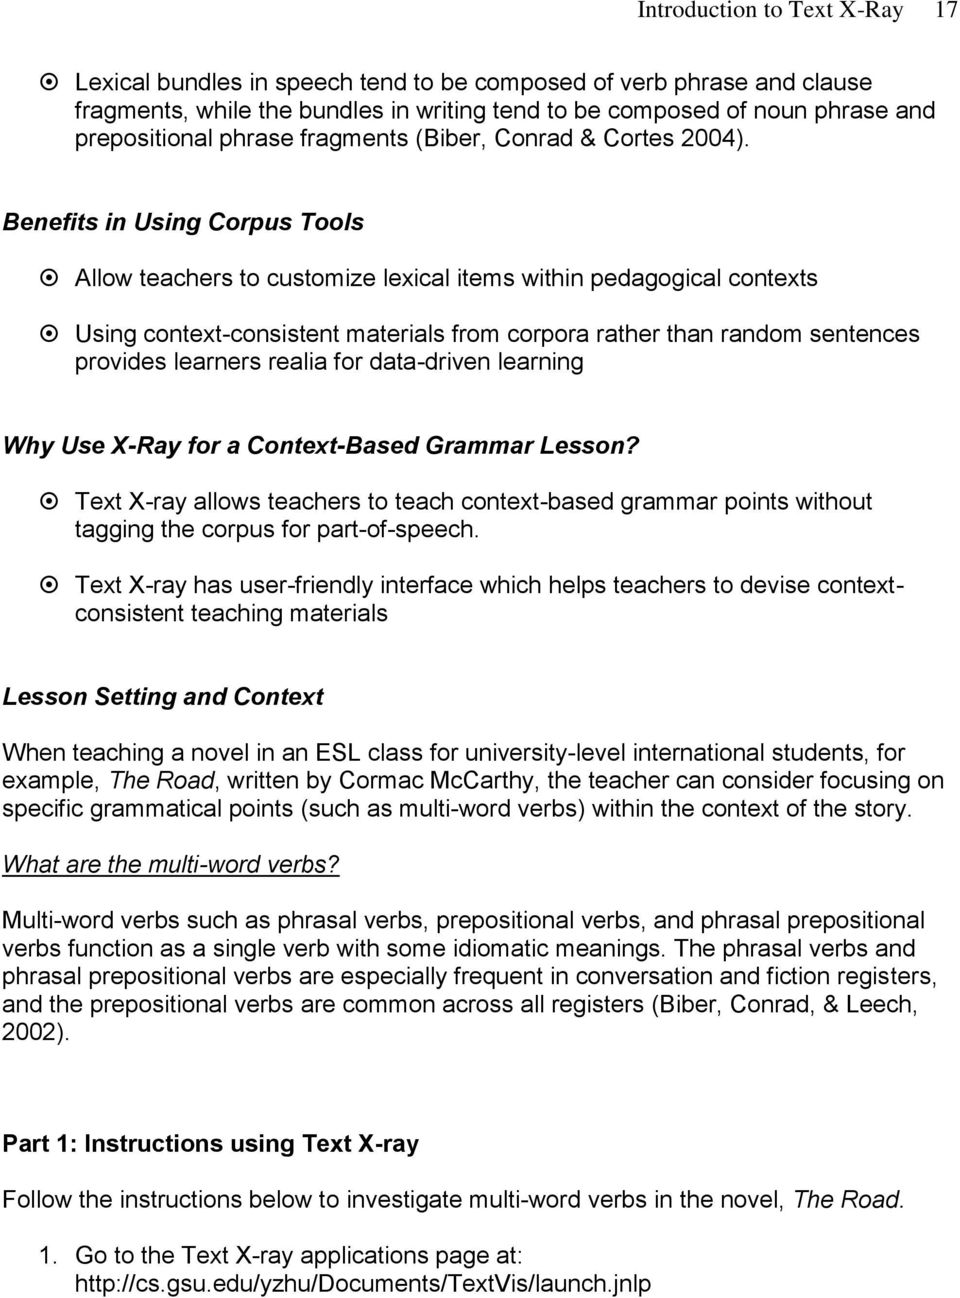 Benefits in Using Corpus Tools Allow teachers to customize lexical items within pedagogical contexts Using context-consistent materials from corpora rather than random sentences provides learners